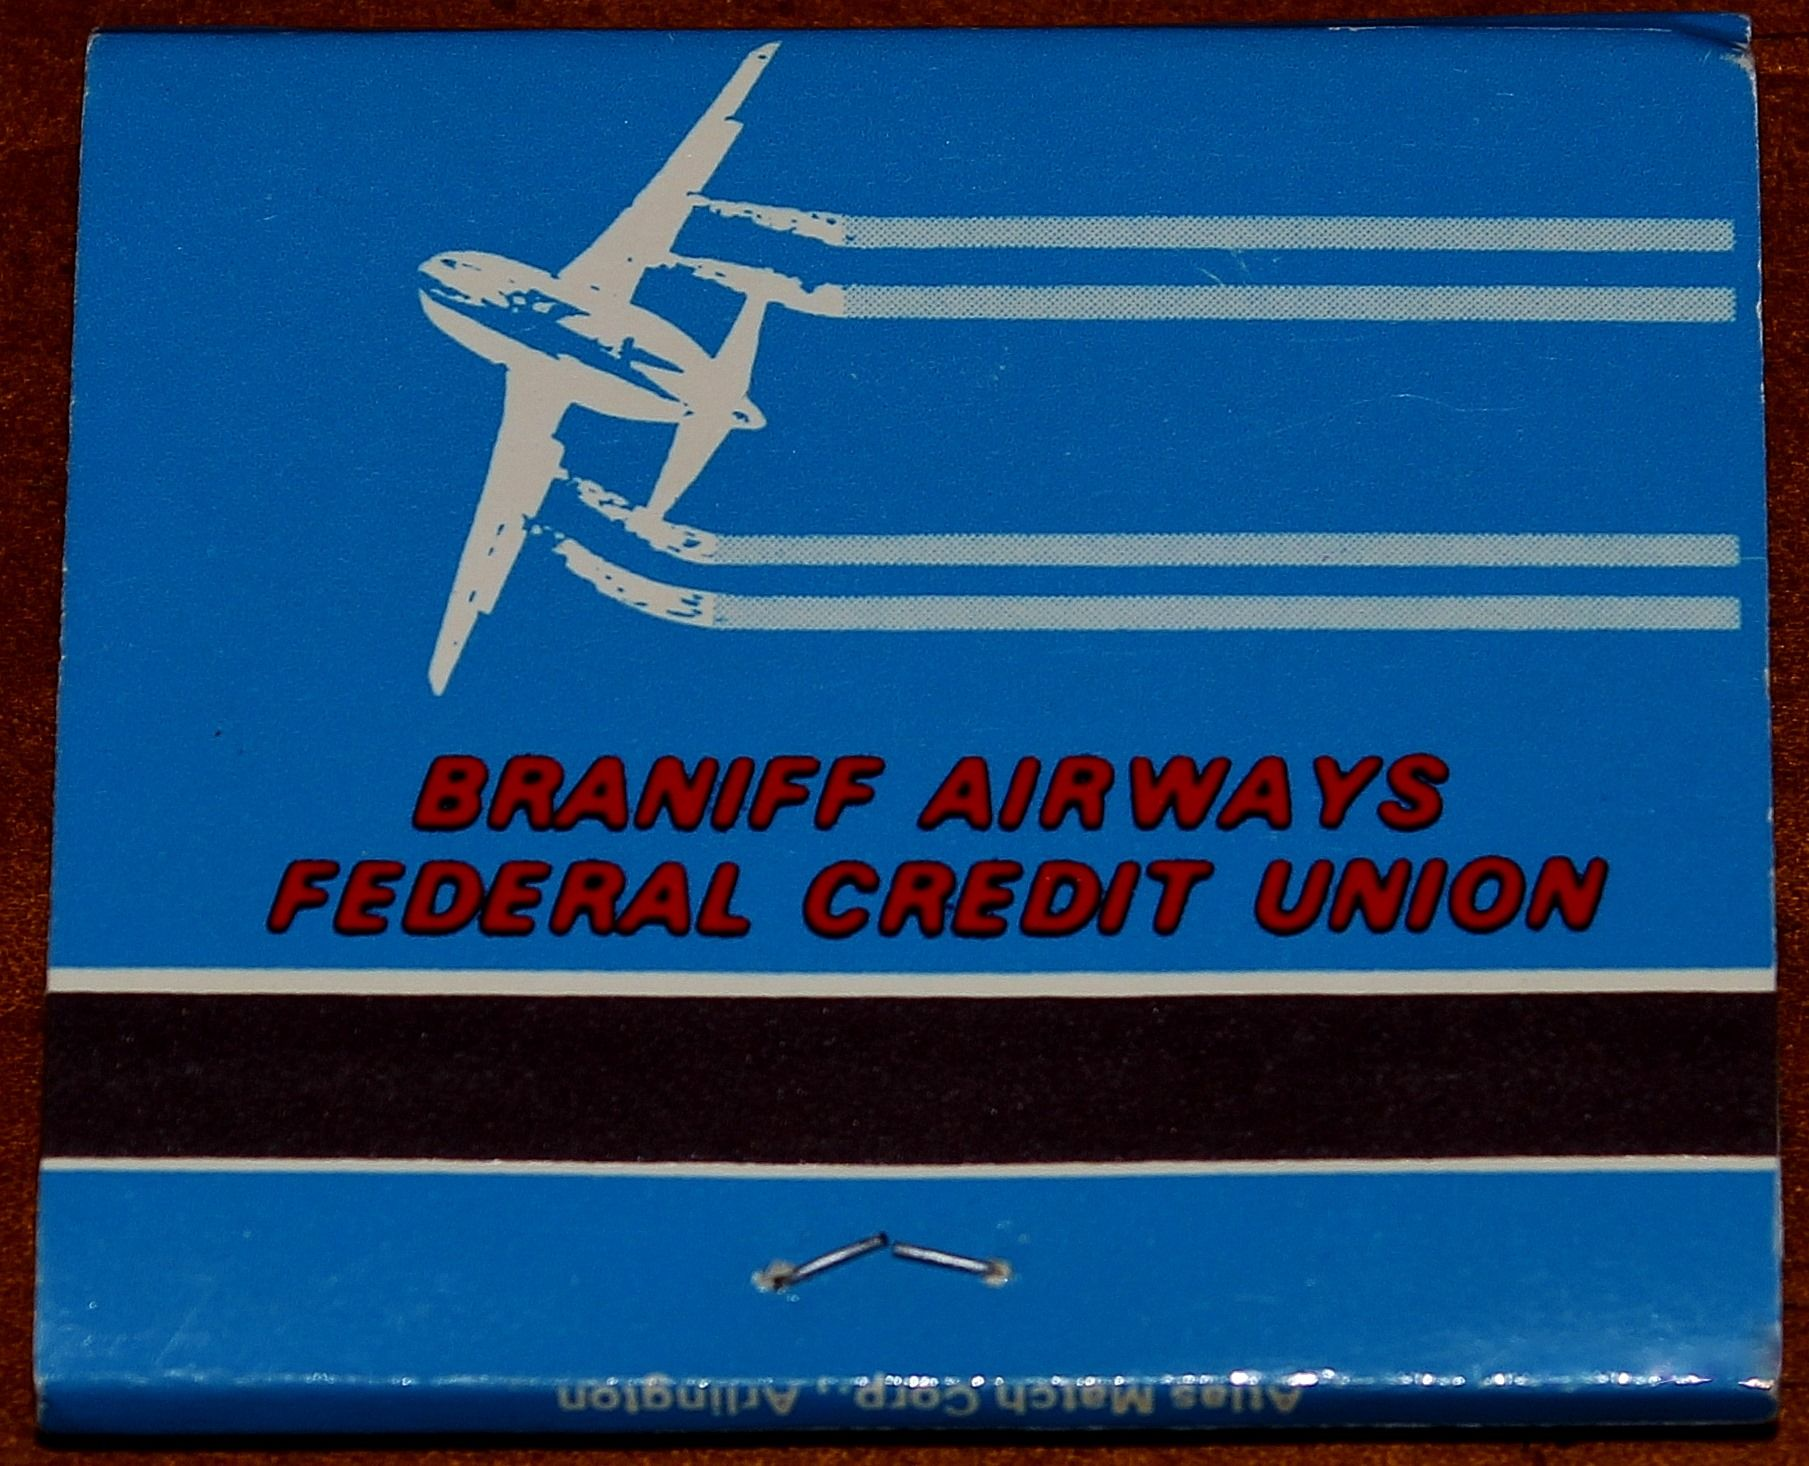 Braniff Airways Federal Credit Union R. Chrismon